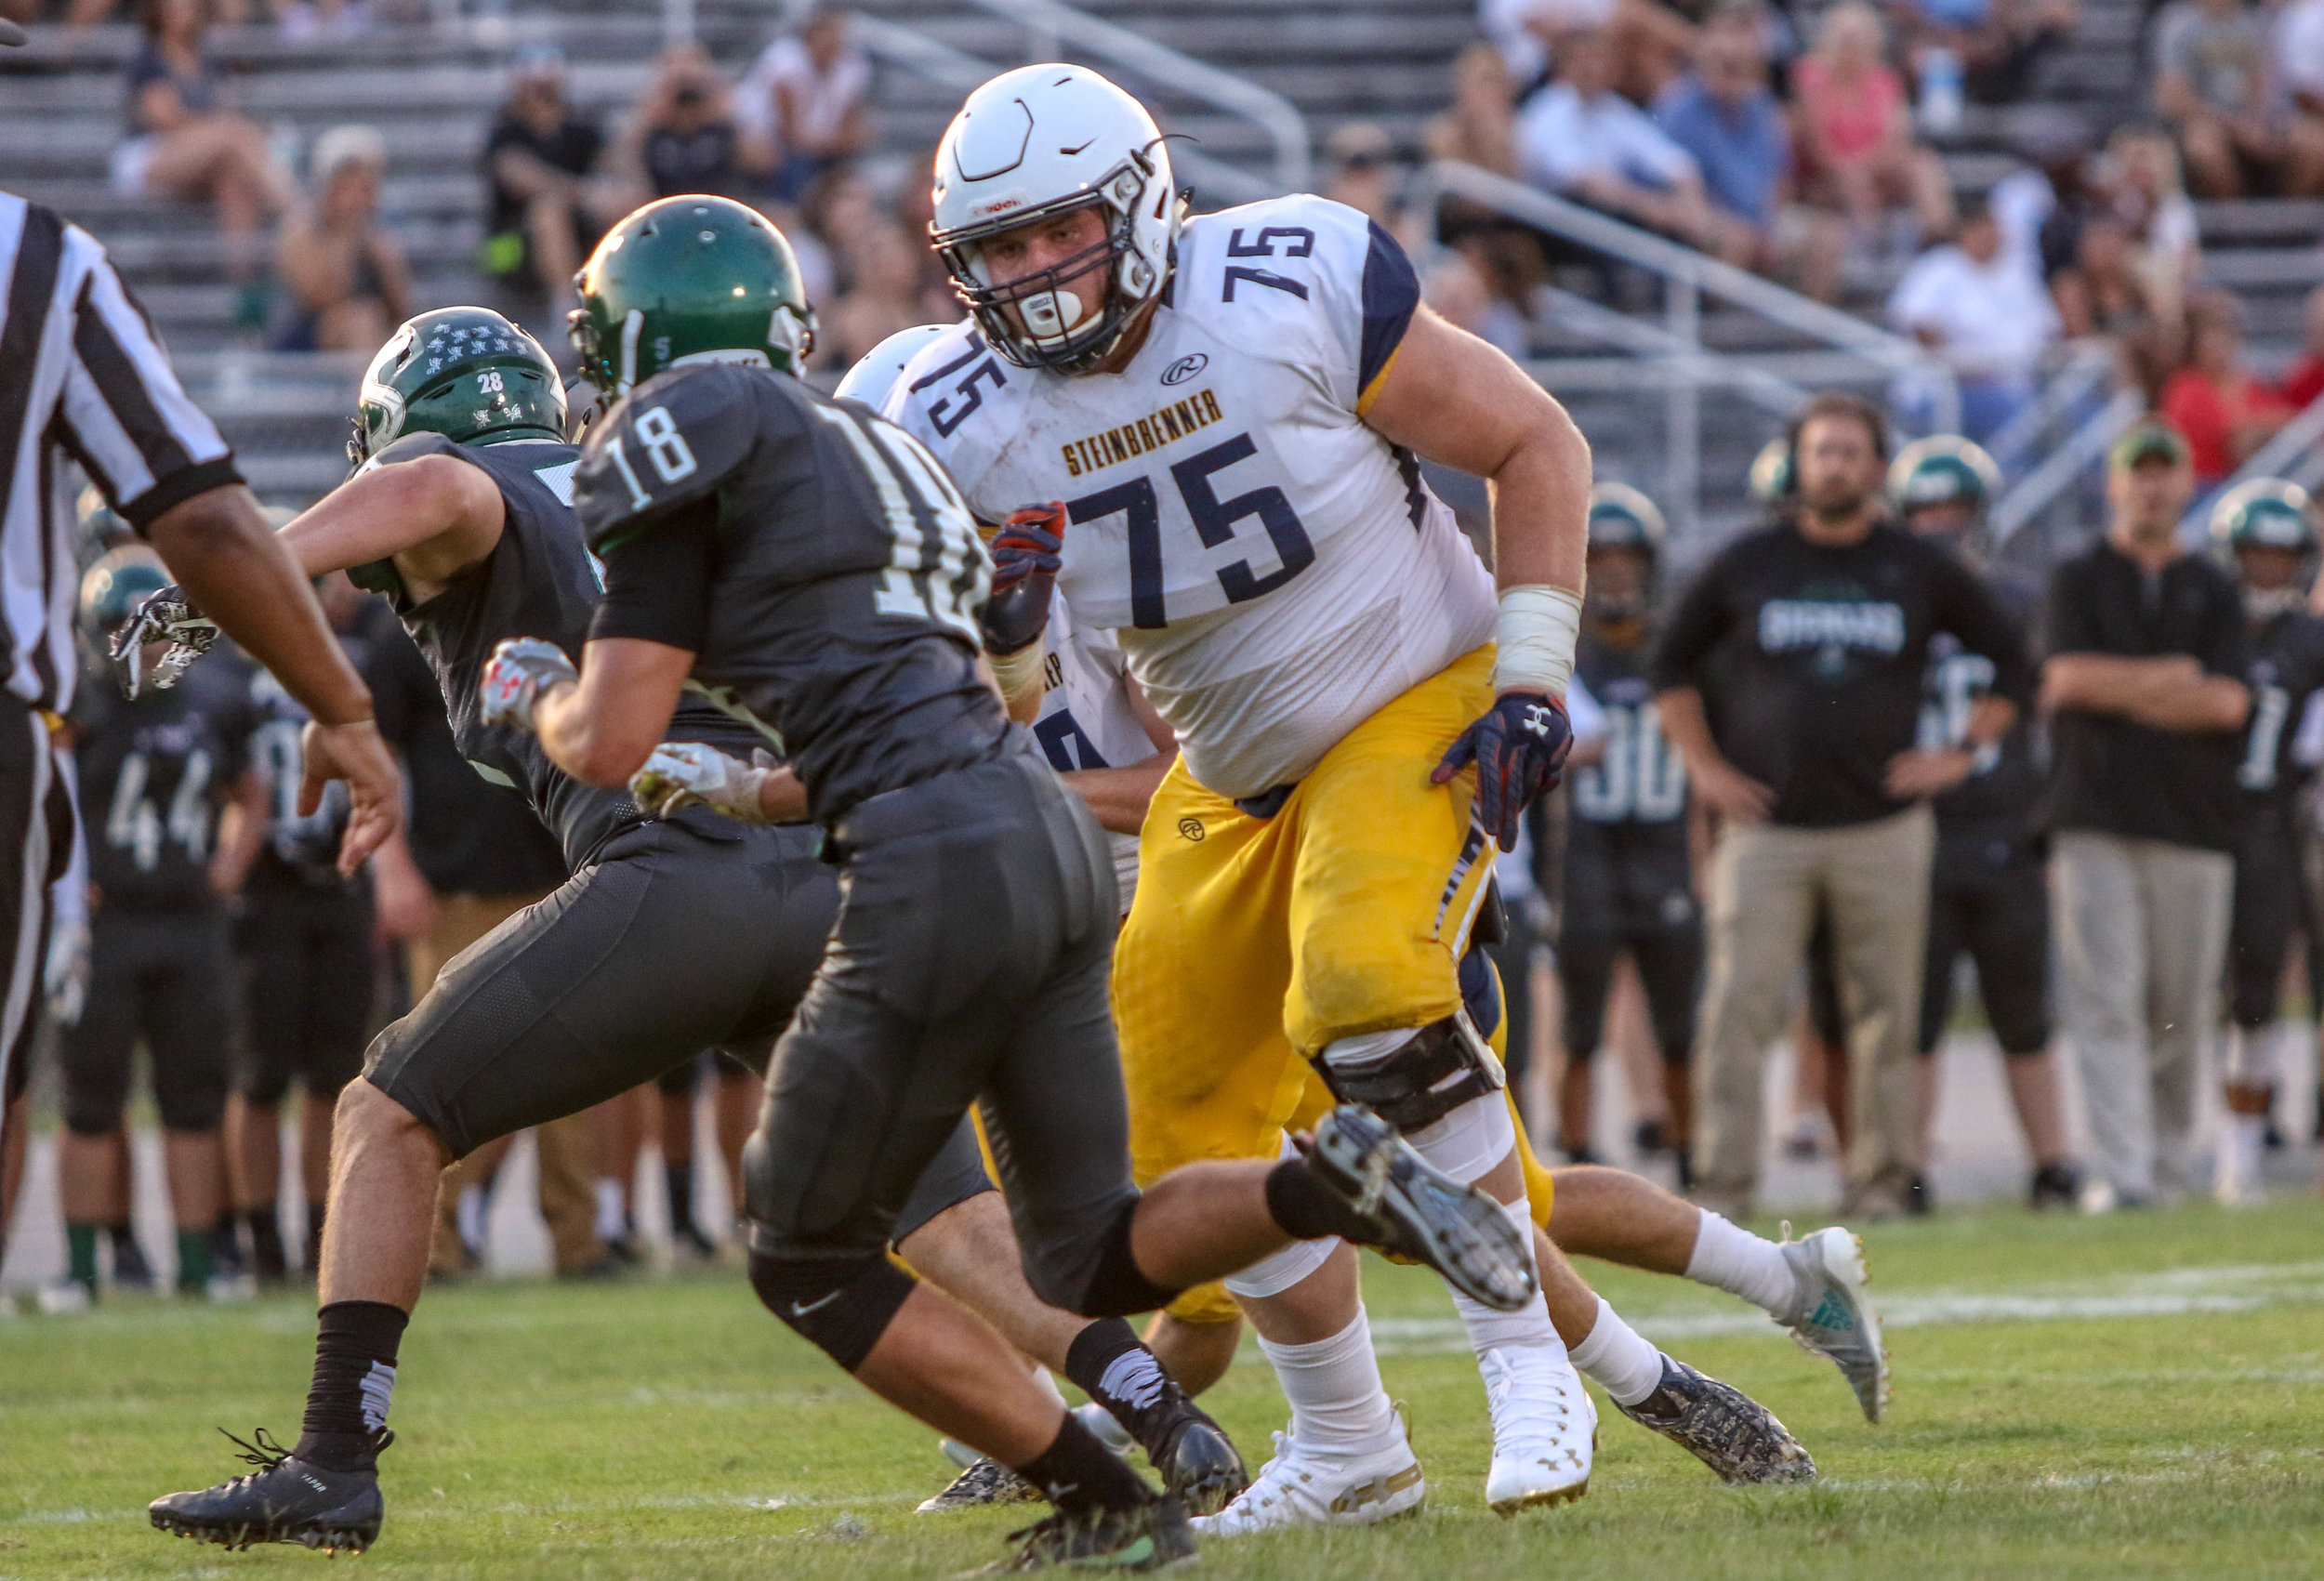 Football: Sickles vs. Steinbrenner Spring Jamboree   Taken 5-16-2019 by Will Turner